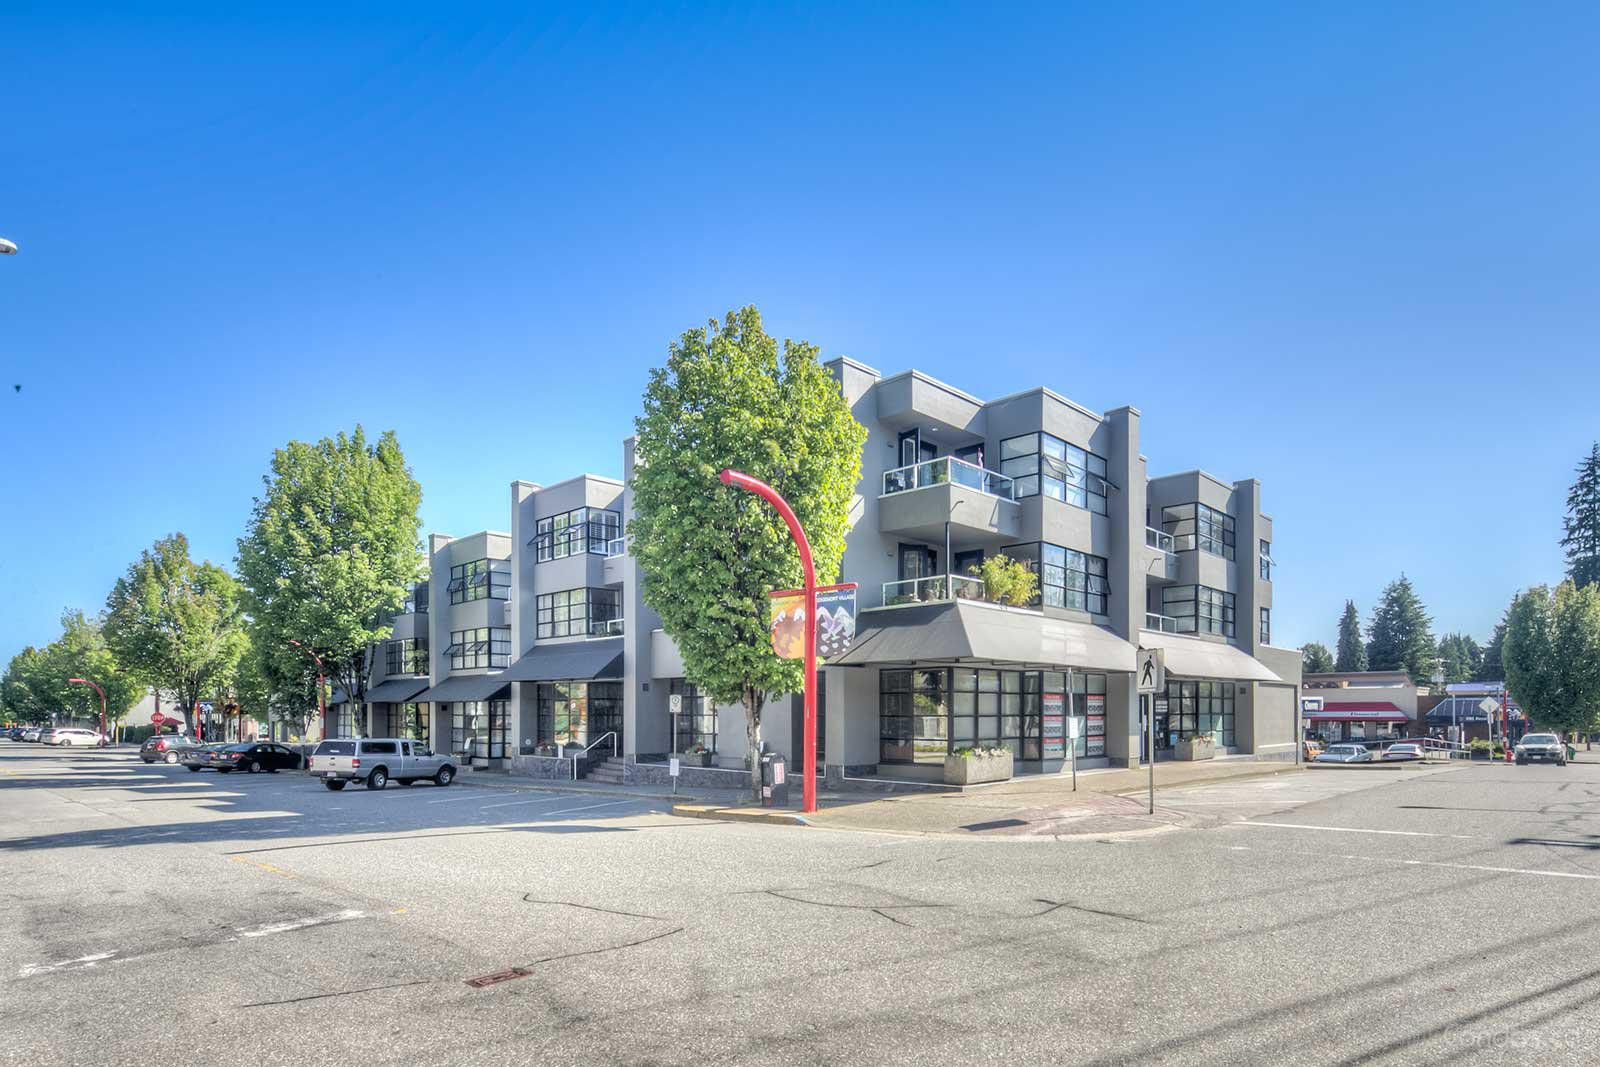 Village Square at 3151 Woodbine Dr, North Vancouver District 0